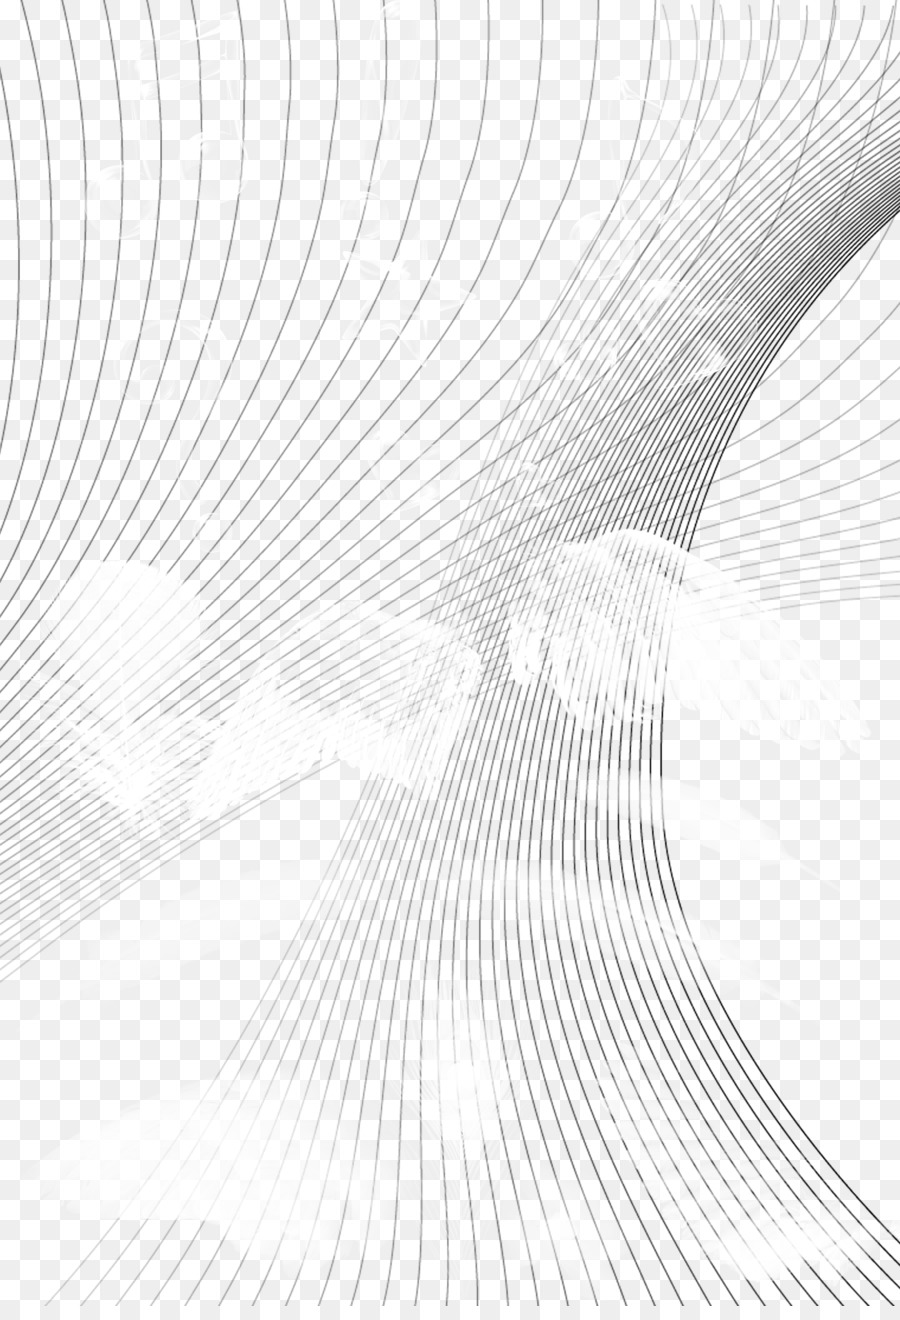 Black and white structure photography pattern white lines wings love notes background png download 15002177 free transparent black and white png